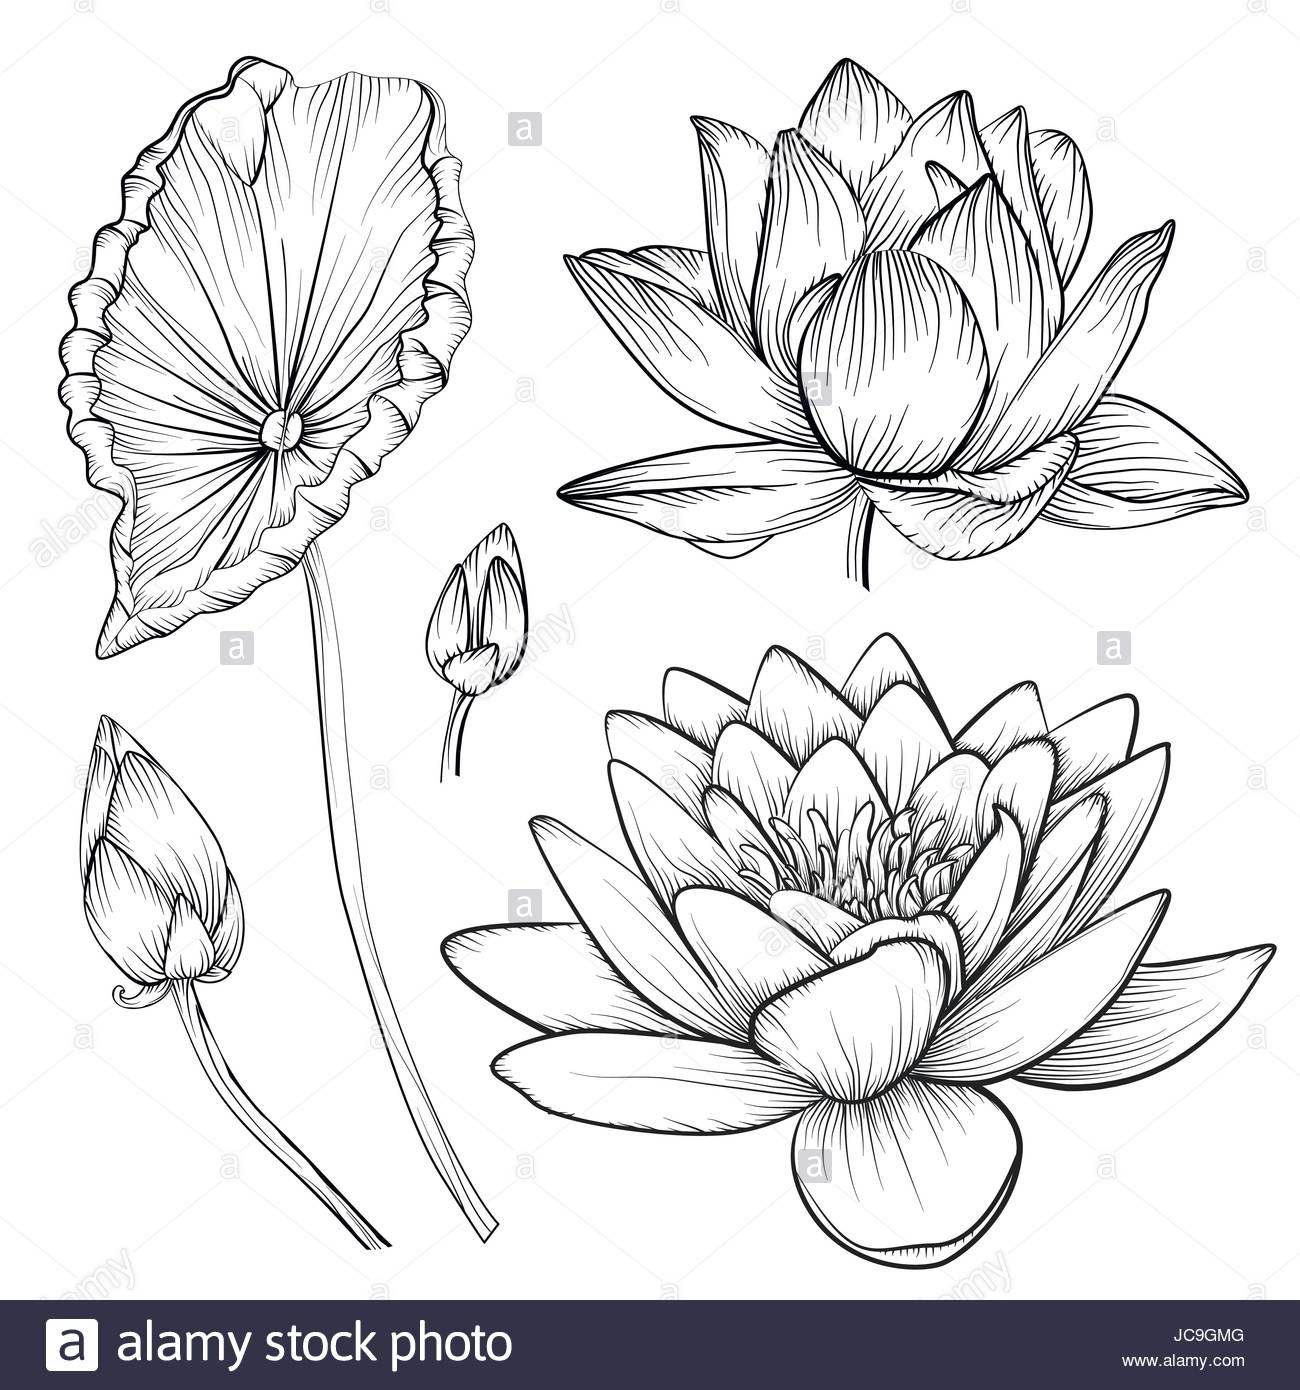 Download this stock vector Lotus water lily vector